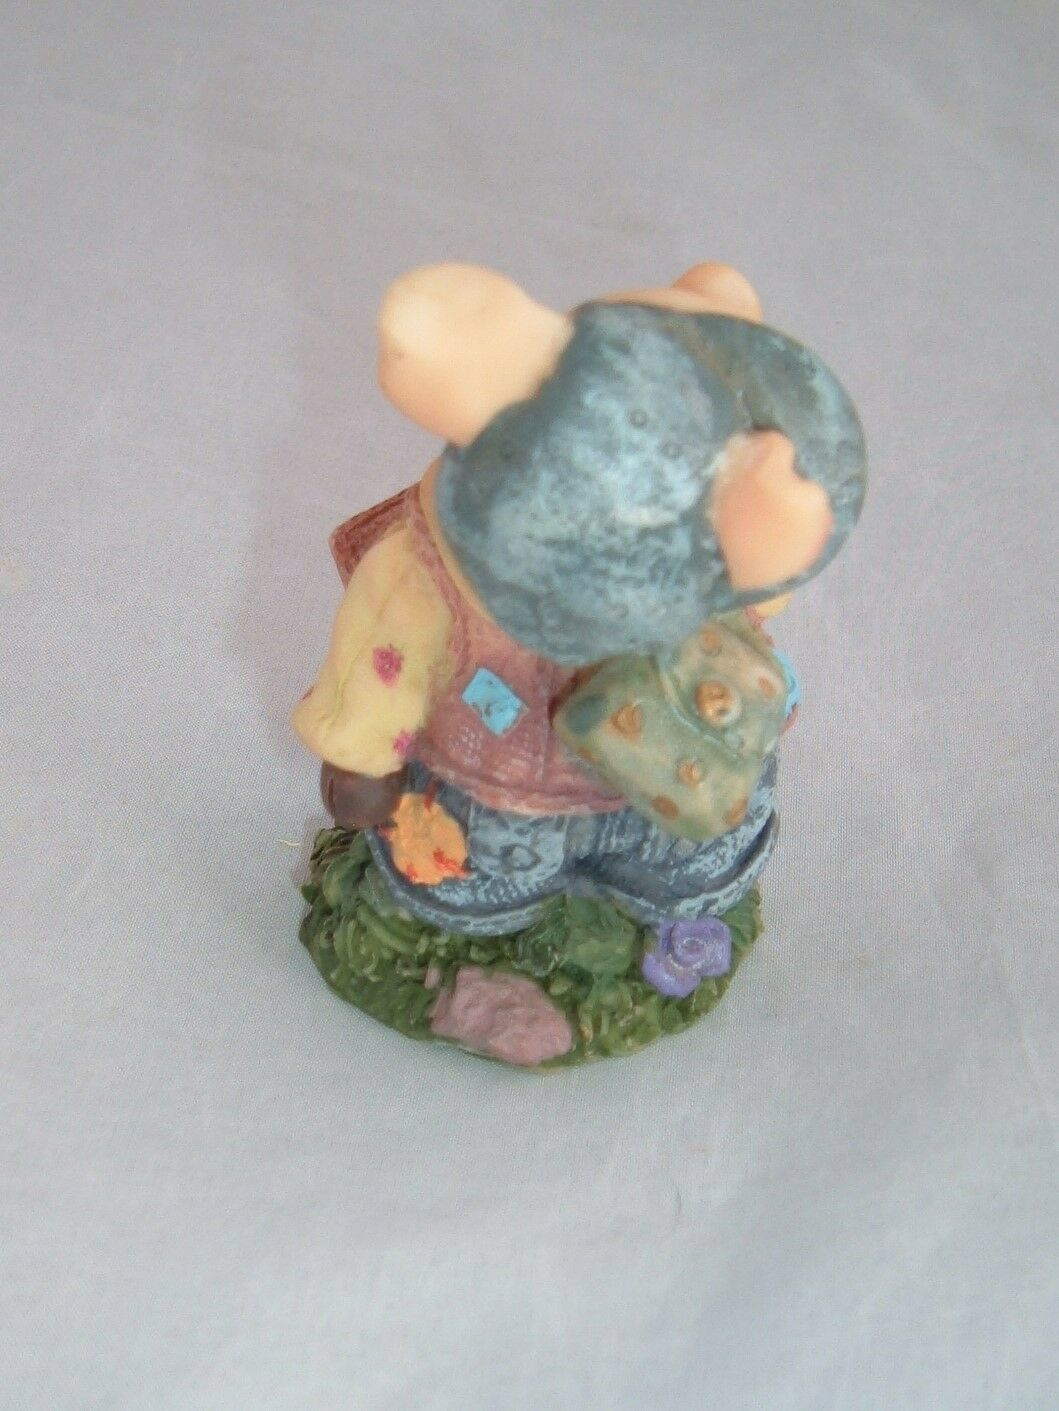 VTG collectible little pig with backpack resin figurine country kitsch kawaii